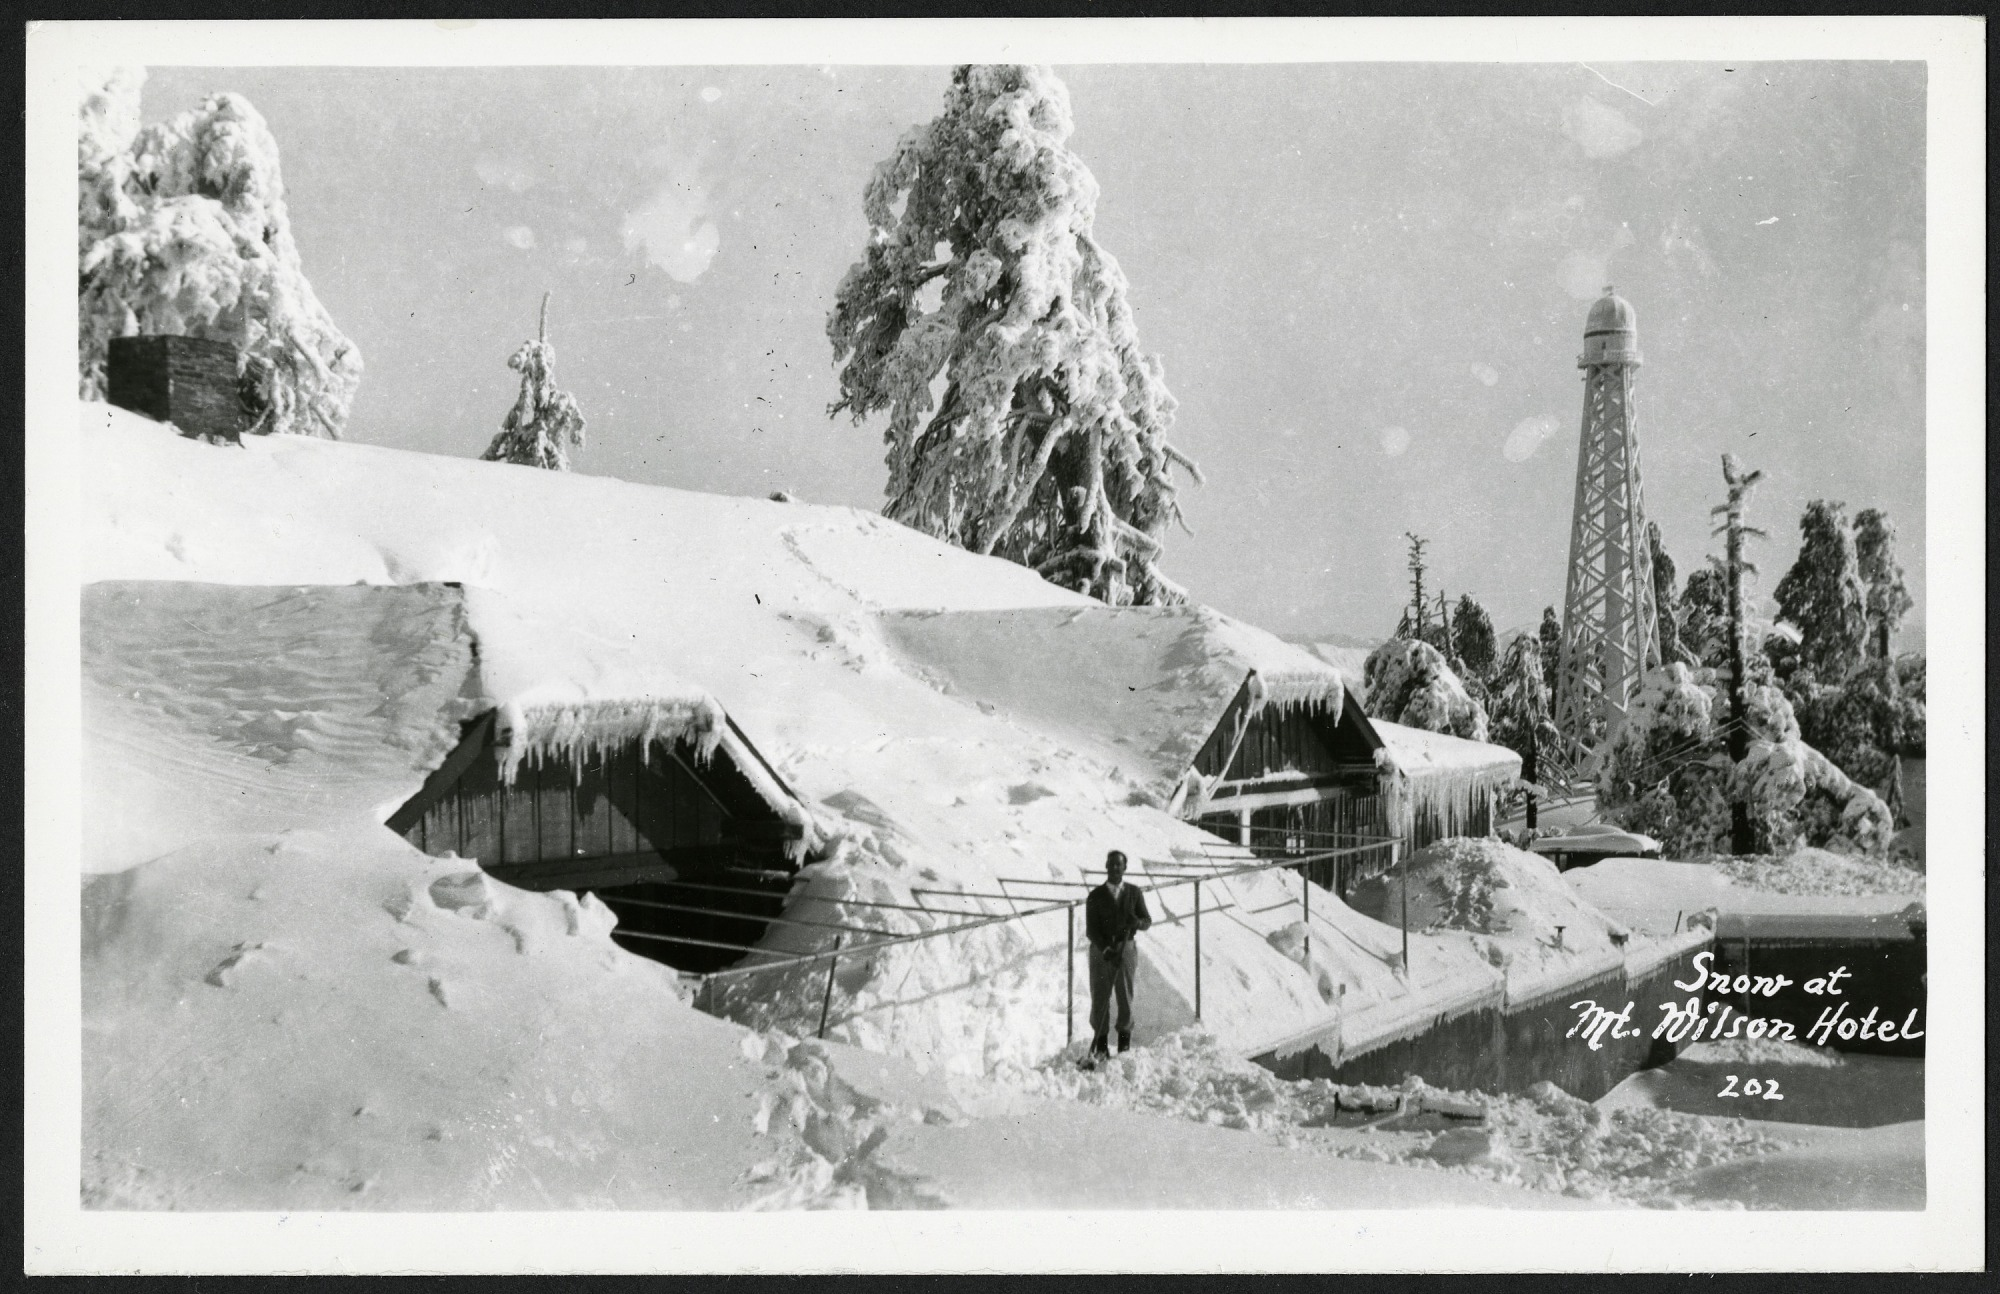 Postcard of Snow at Mt. Wilson Hotel